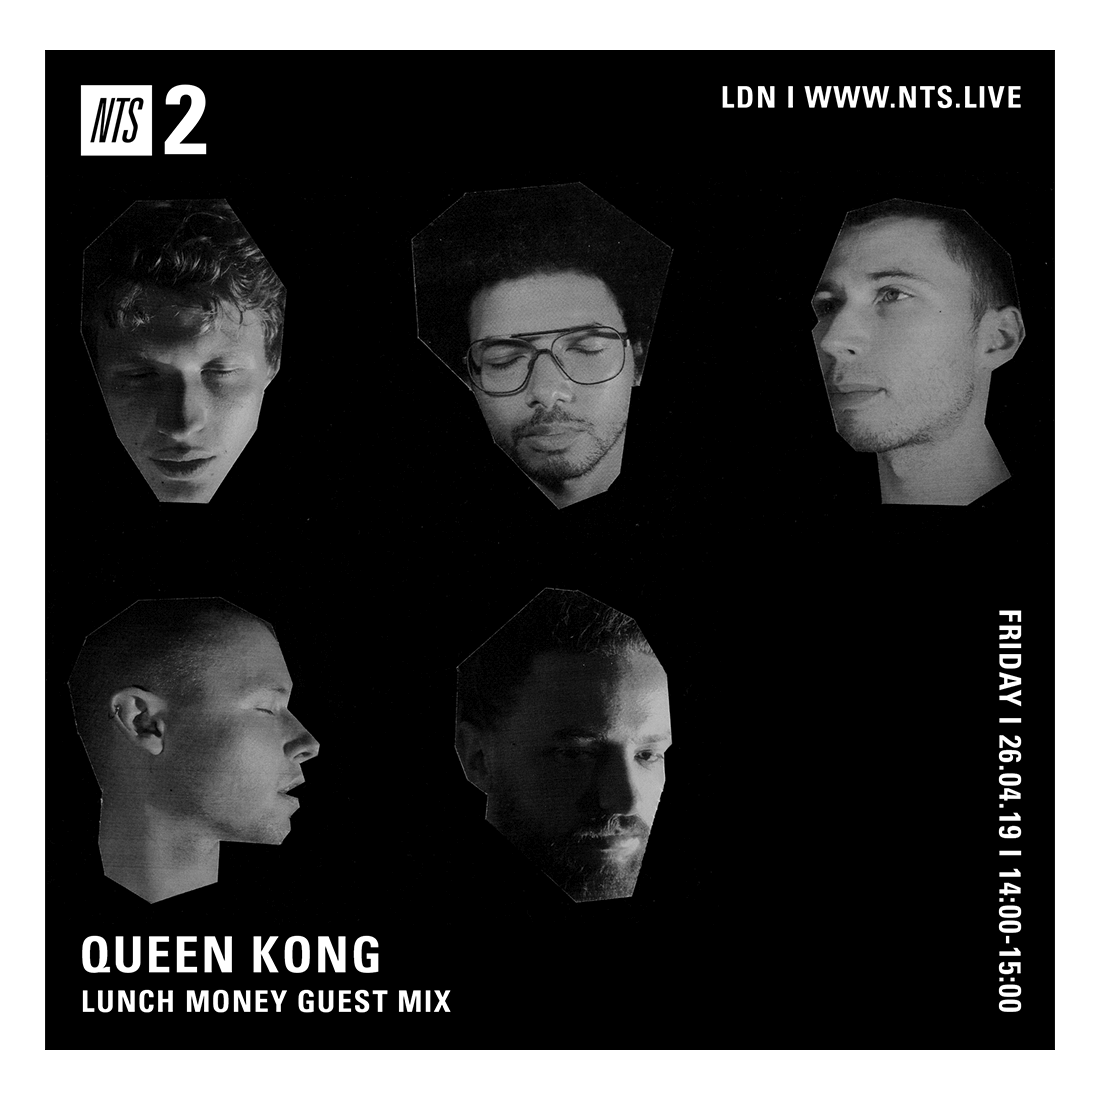 Lunch Money Life on NTS Live